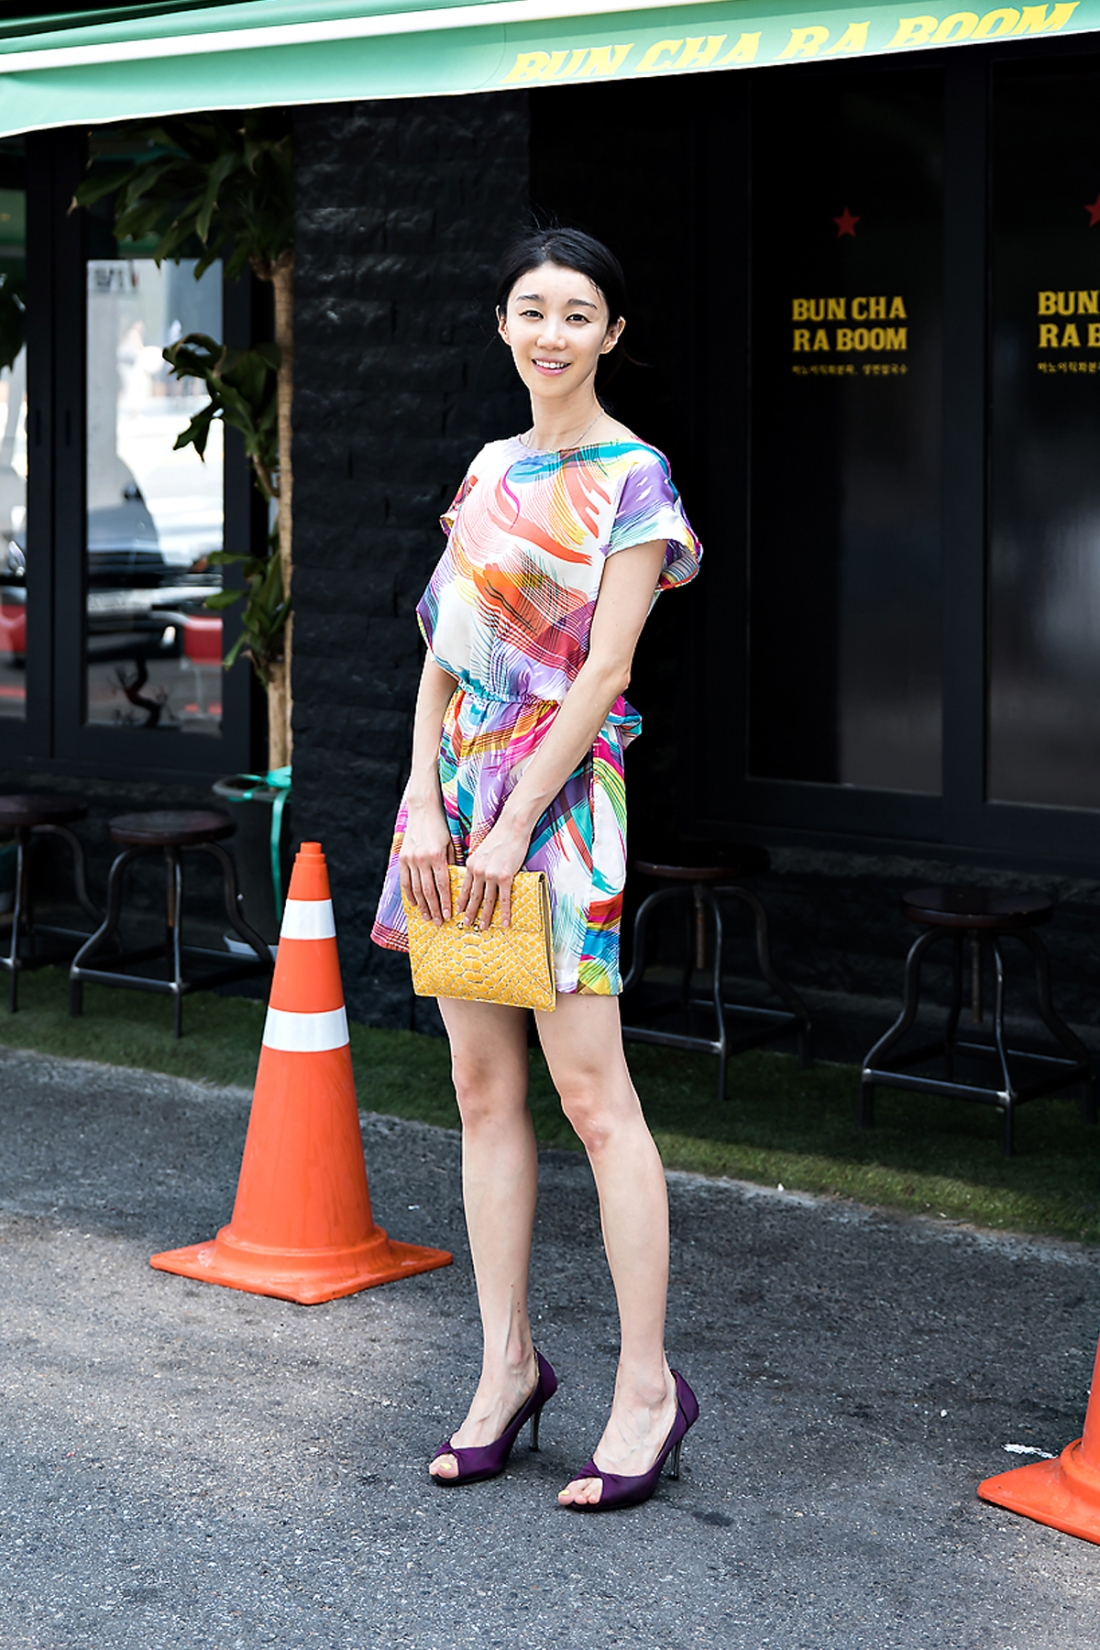 Yoo Minju, Street Fashion 2017 in Seoul.jpg